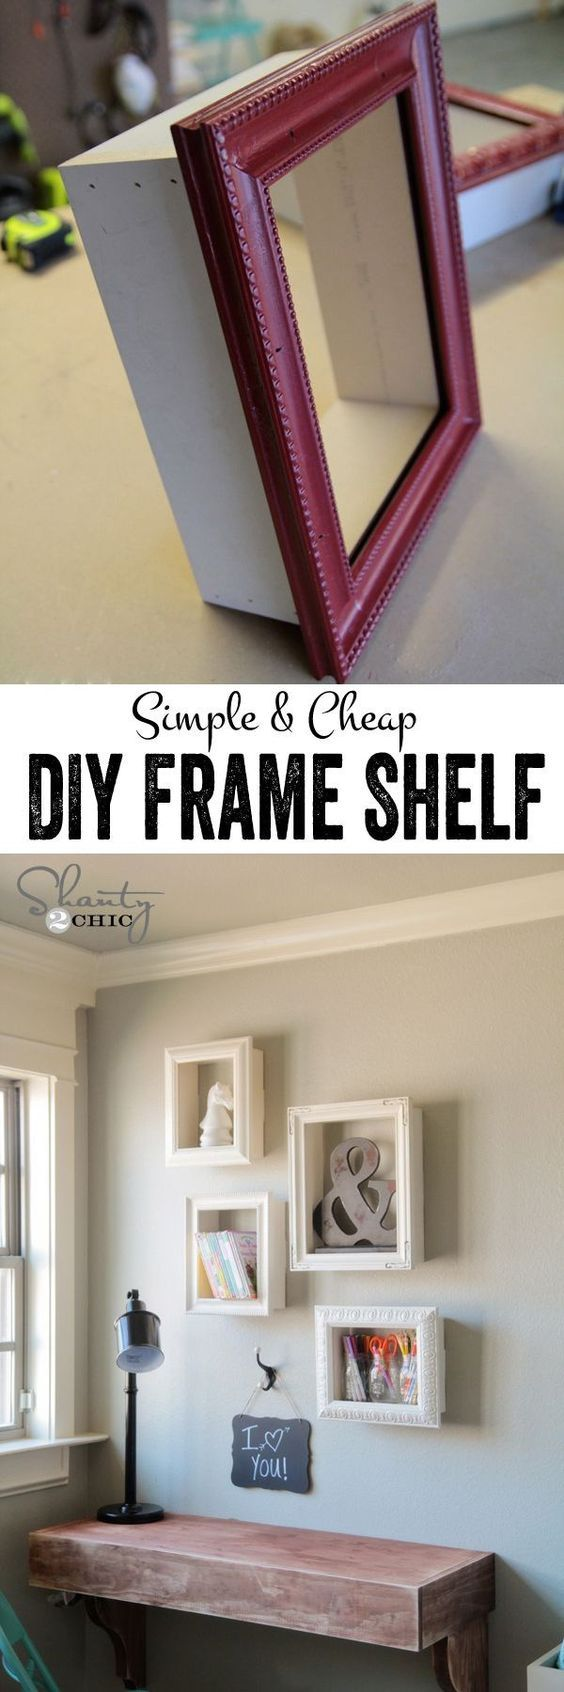 Cheap diy house projects